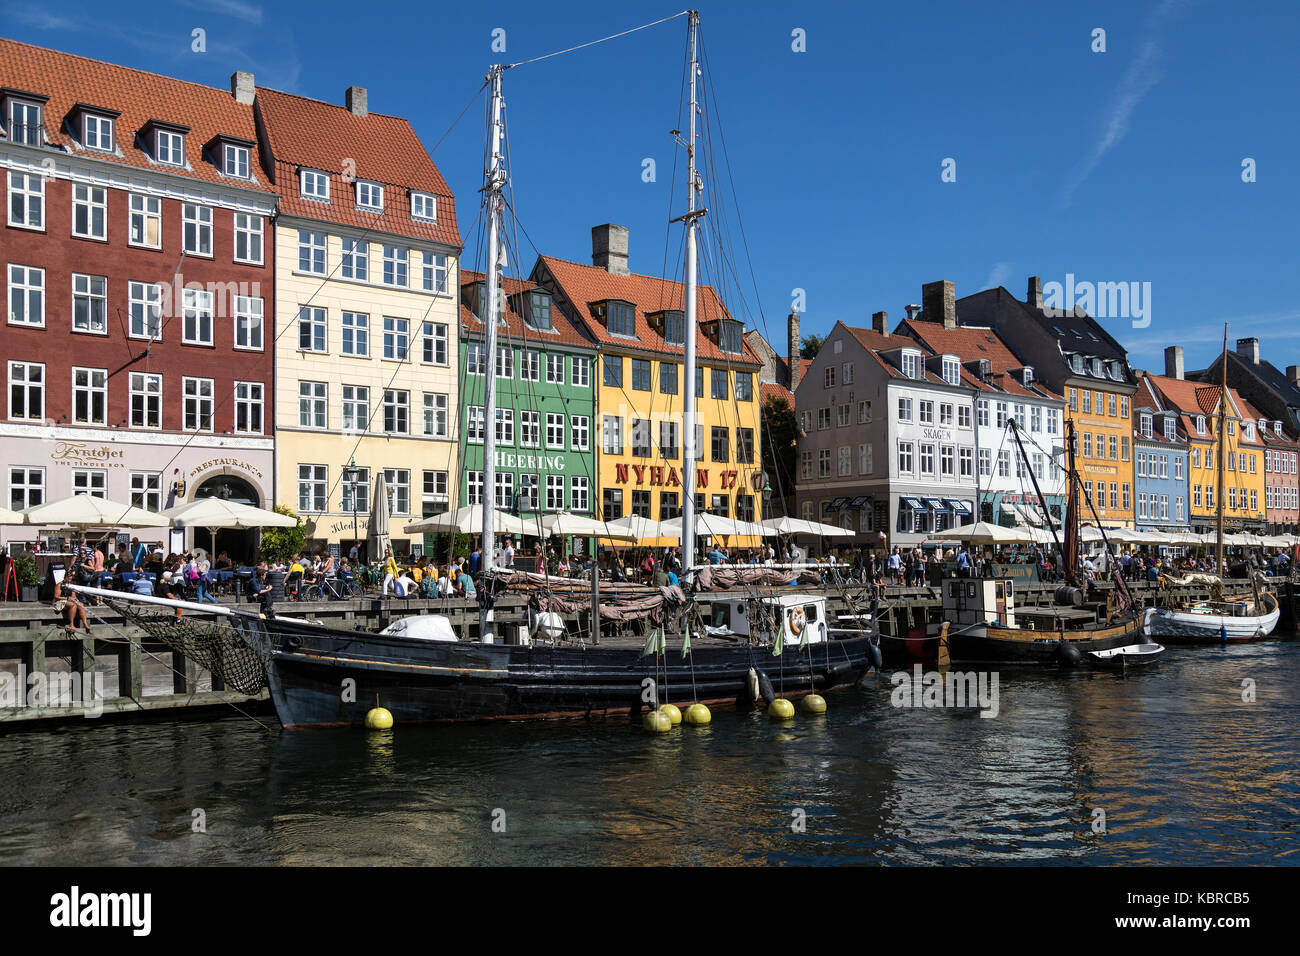 Nyhavn - New Harbor - a 17th-century waterfront, canal and entertainment district in Copenhagen, Denmark. - Stock Image